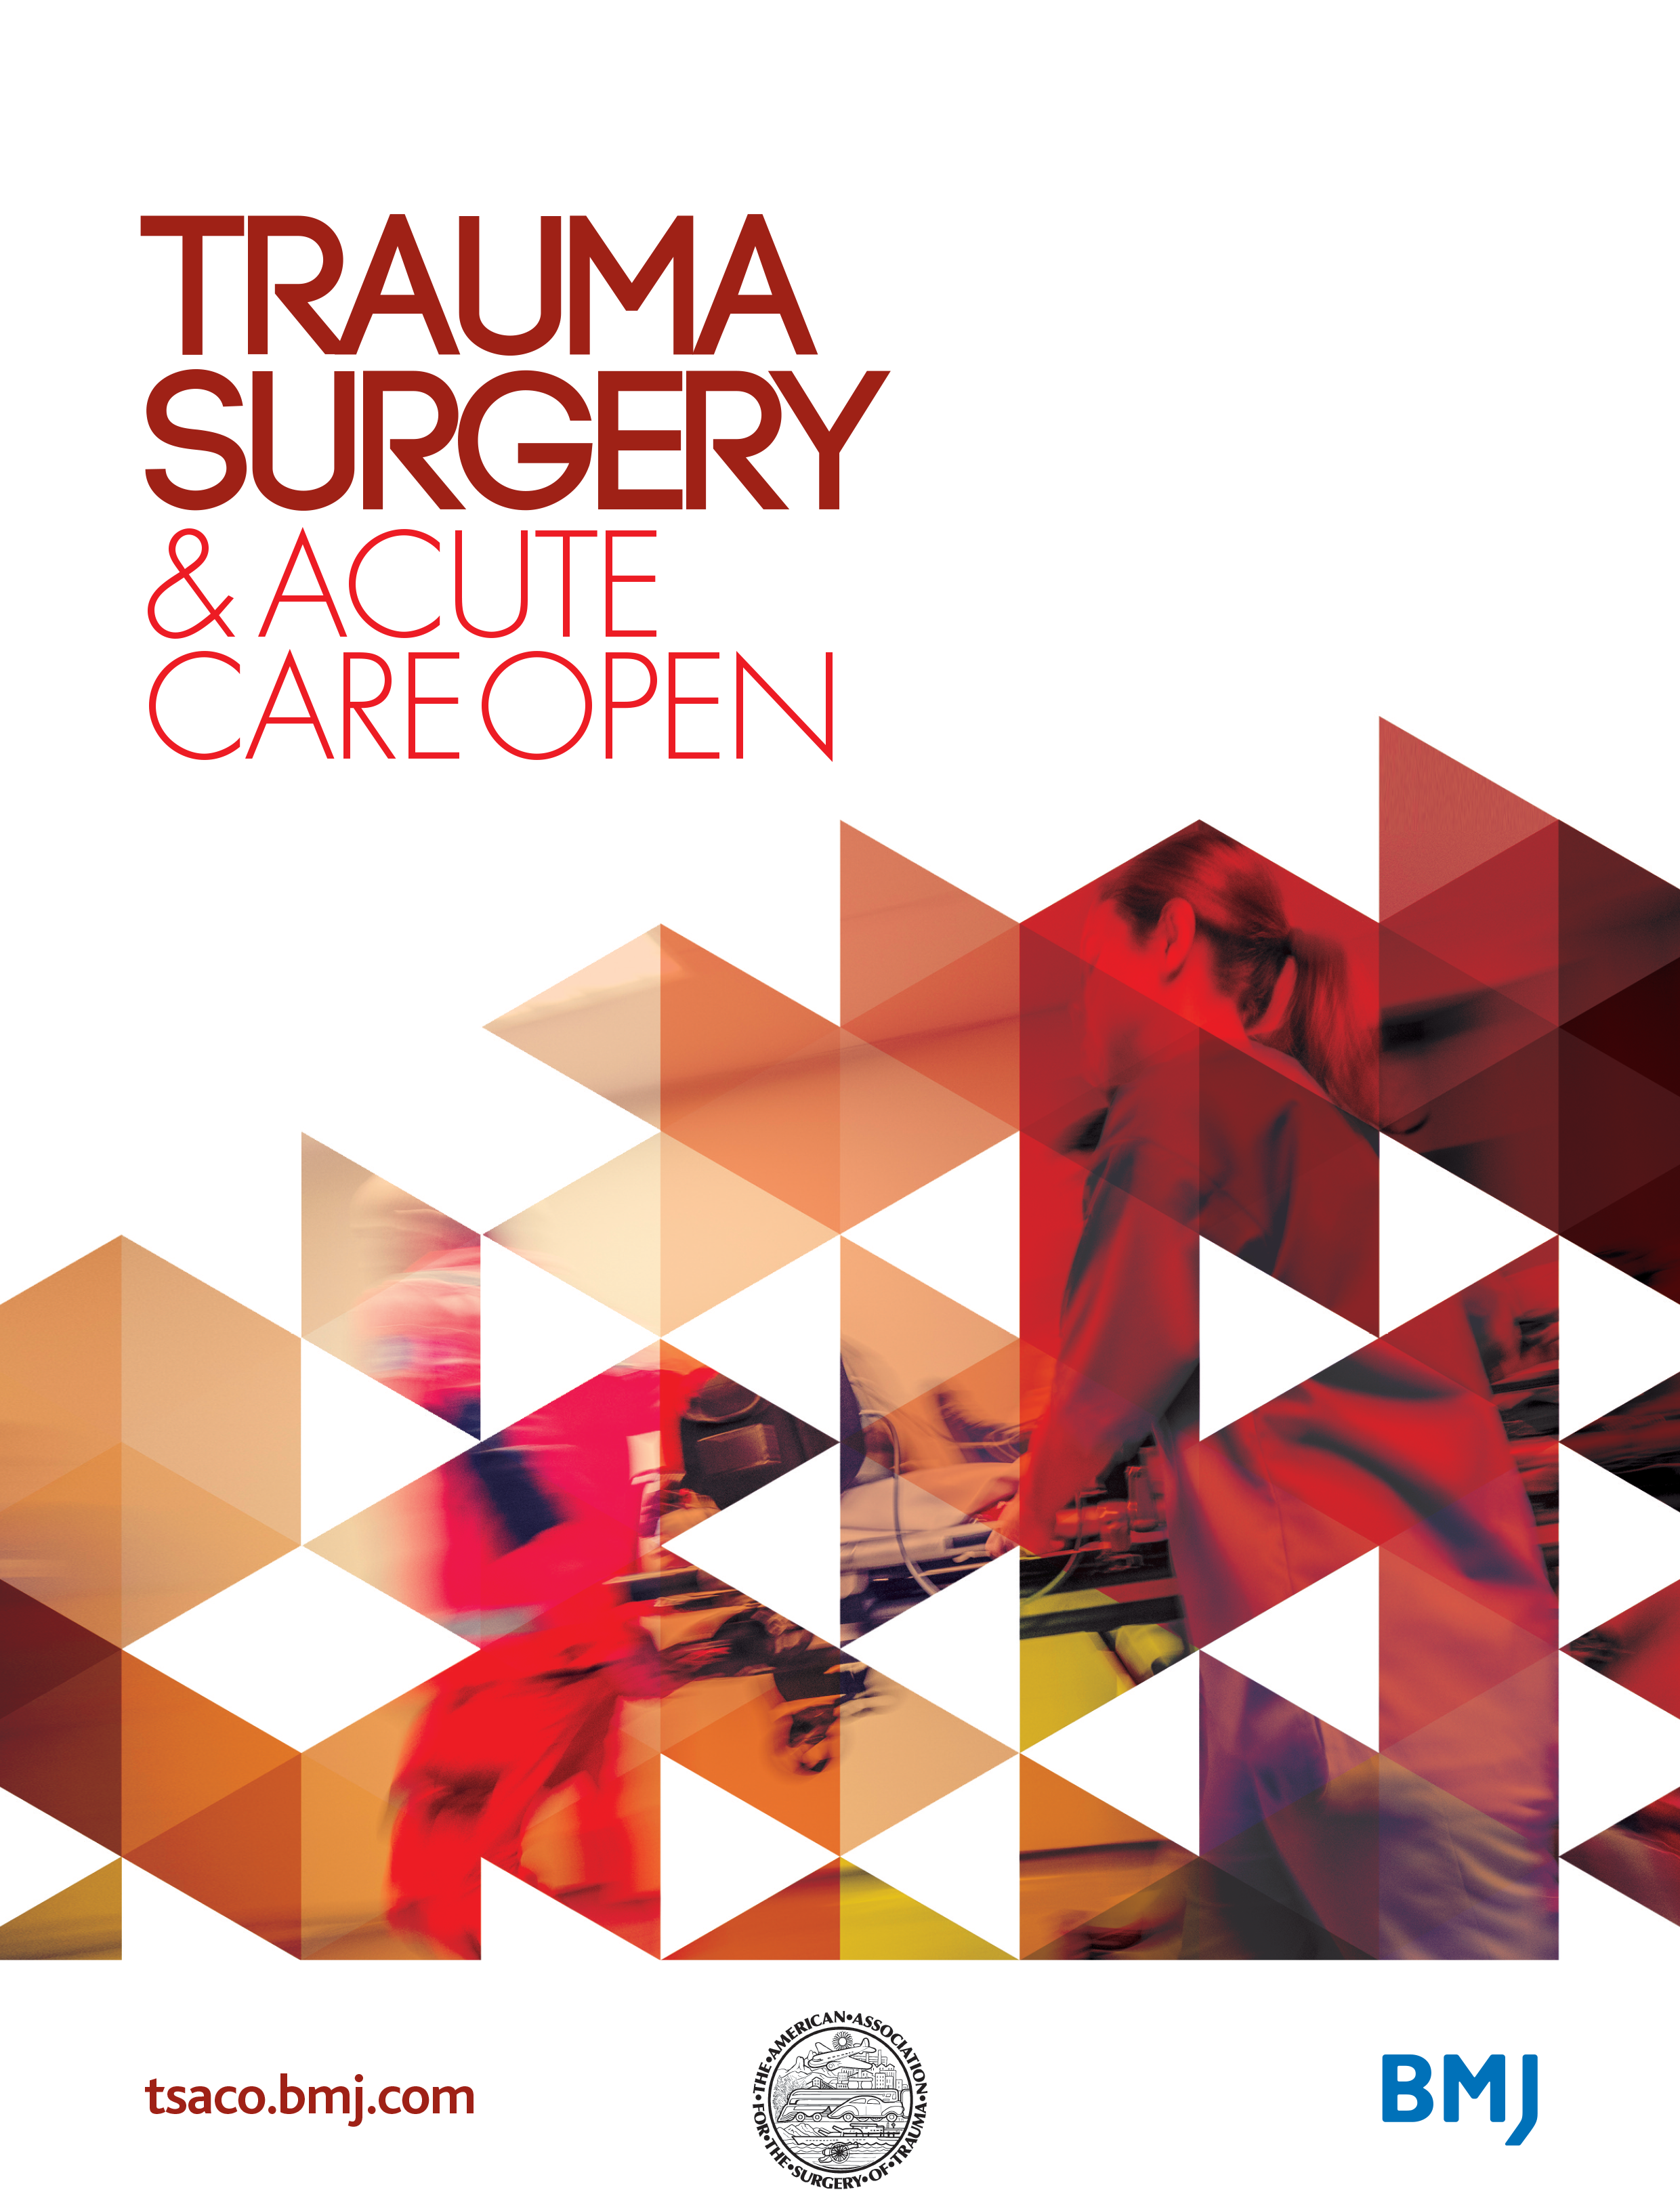 Home - The American Association for the Surgery of Trauma